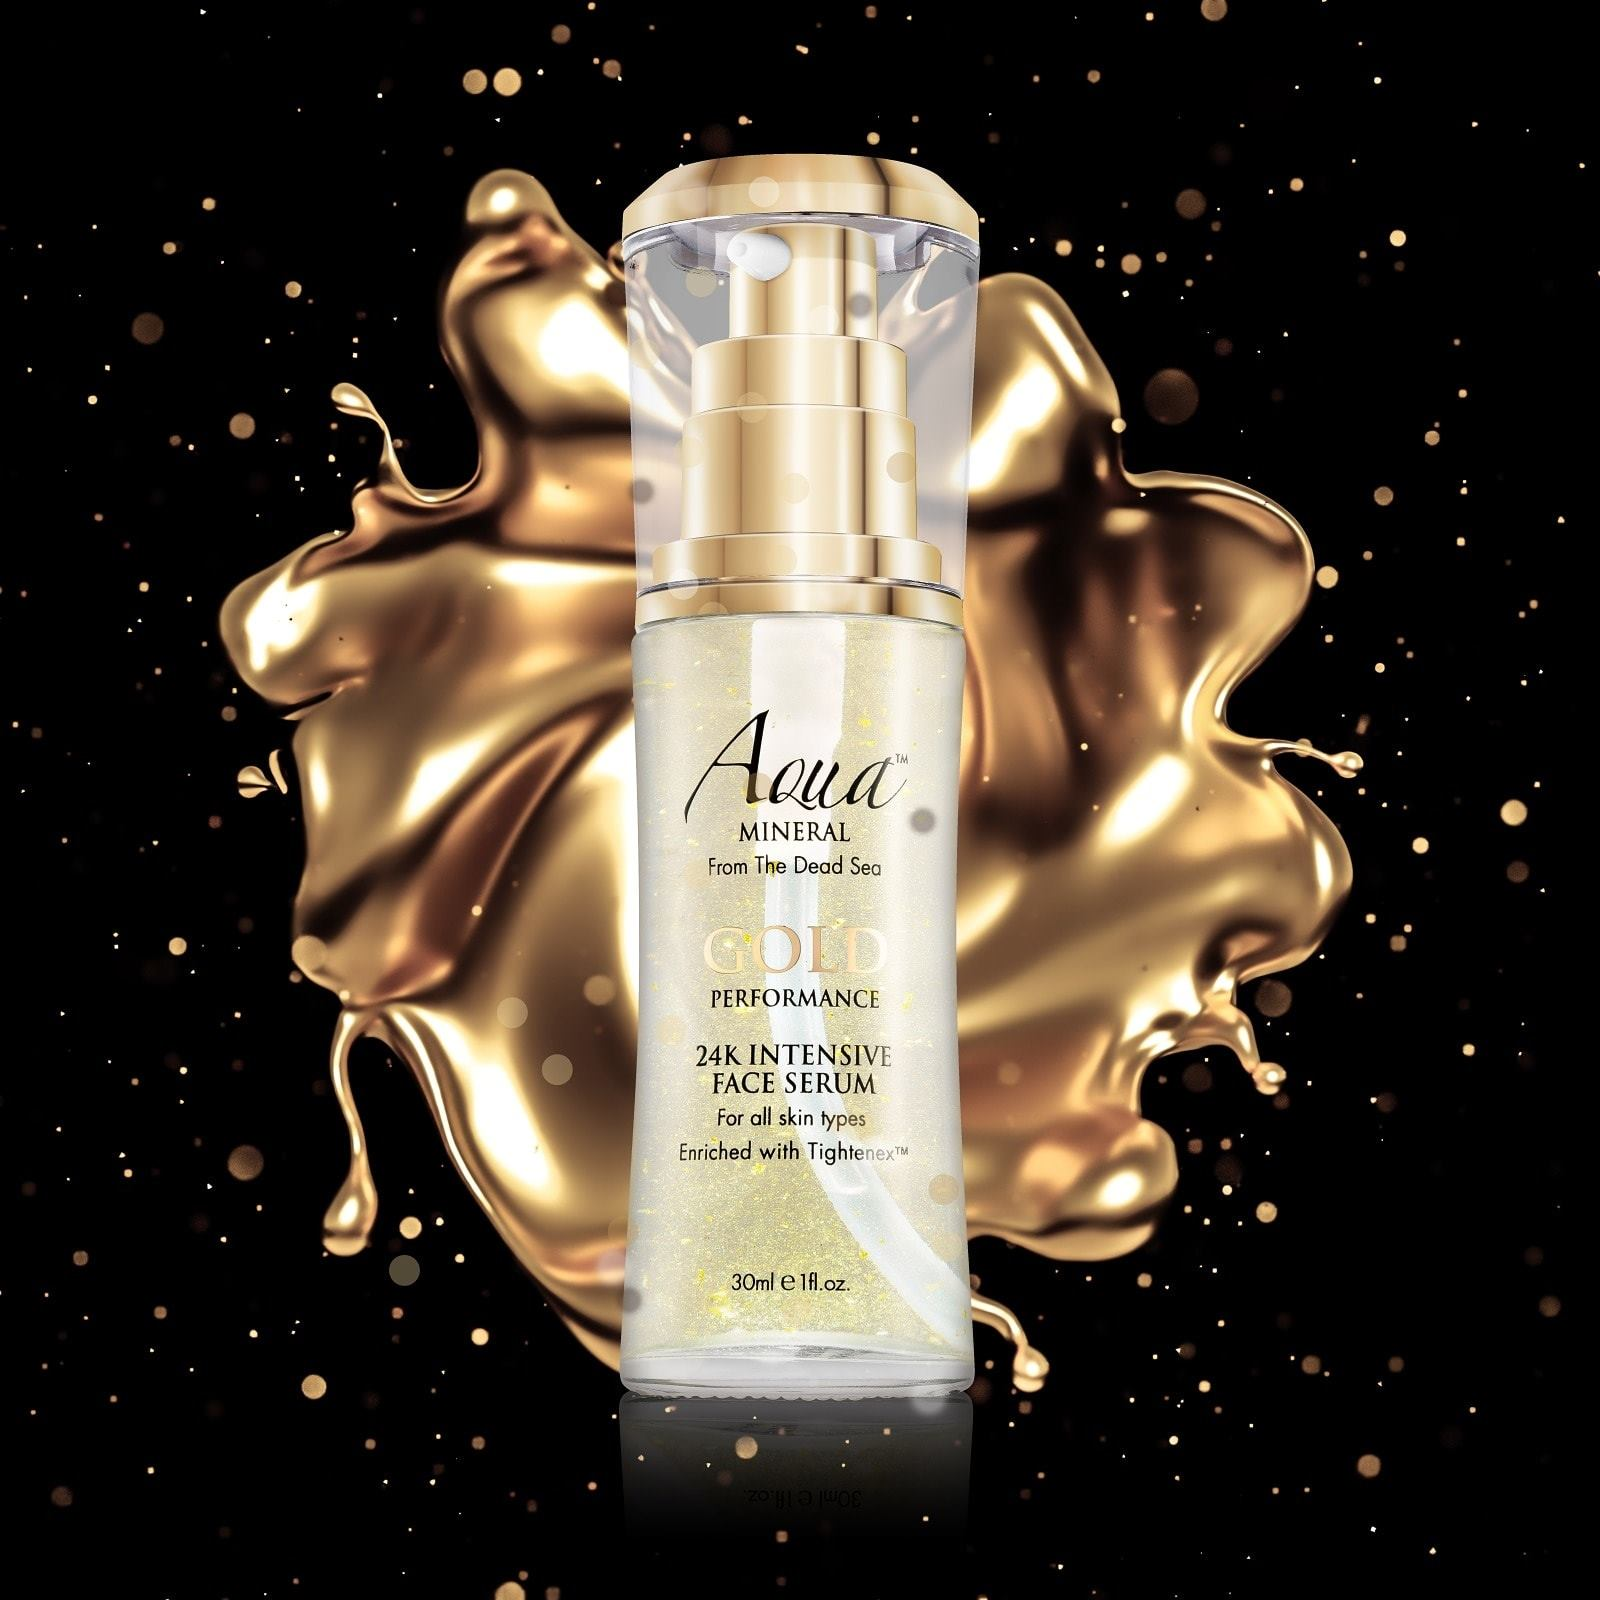 Gold Performance 24 K Intensive Face Serum Aqua Mineral